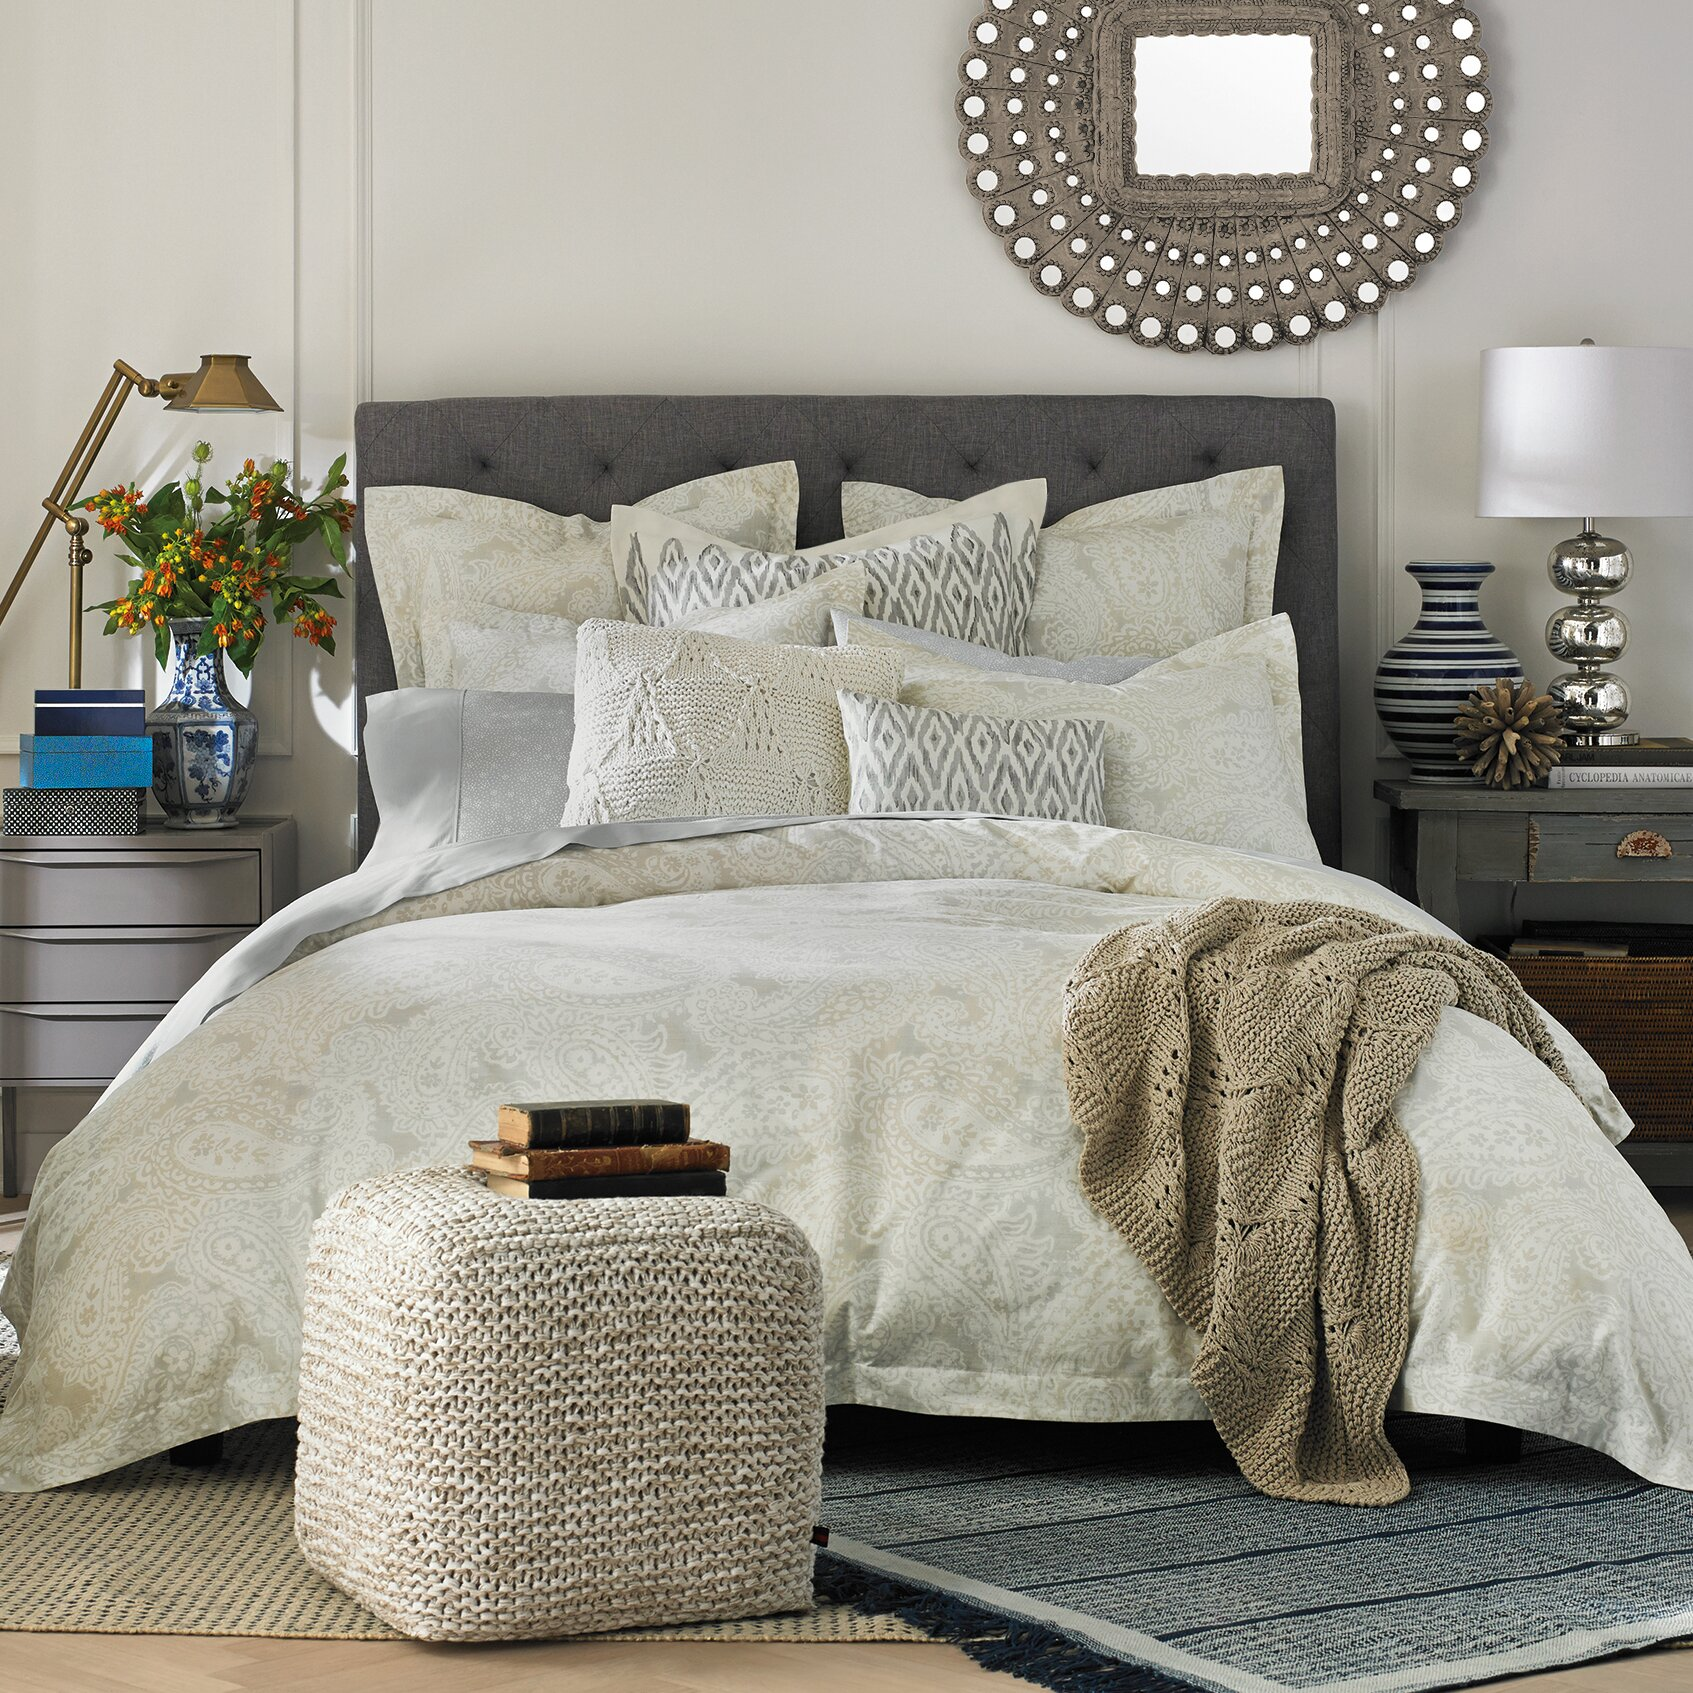 Paisley Bedroom Tommy Hilfiger Mission Paisley Bedding Collection Reviews Wayfair